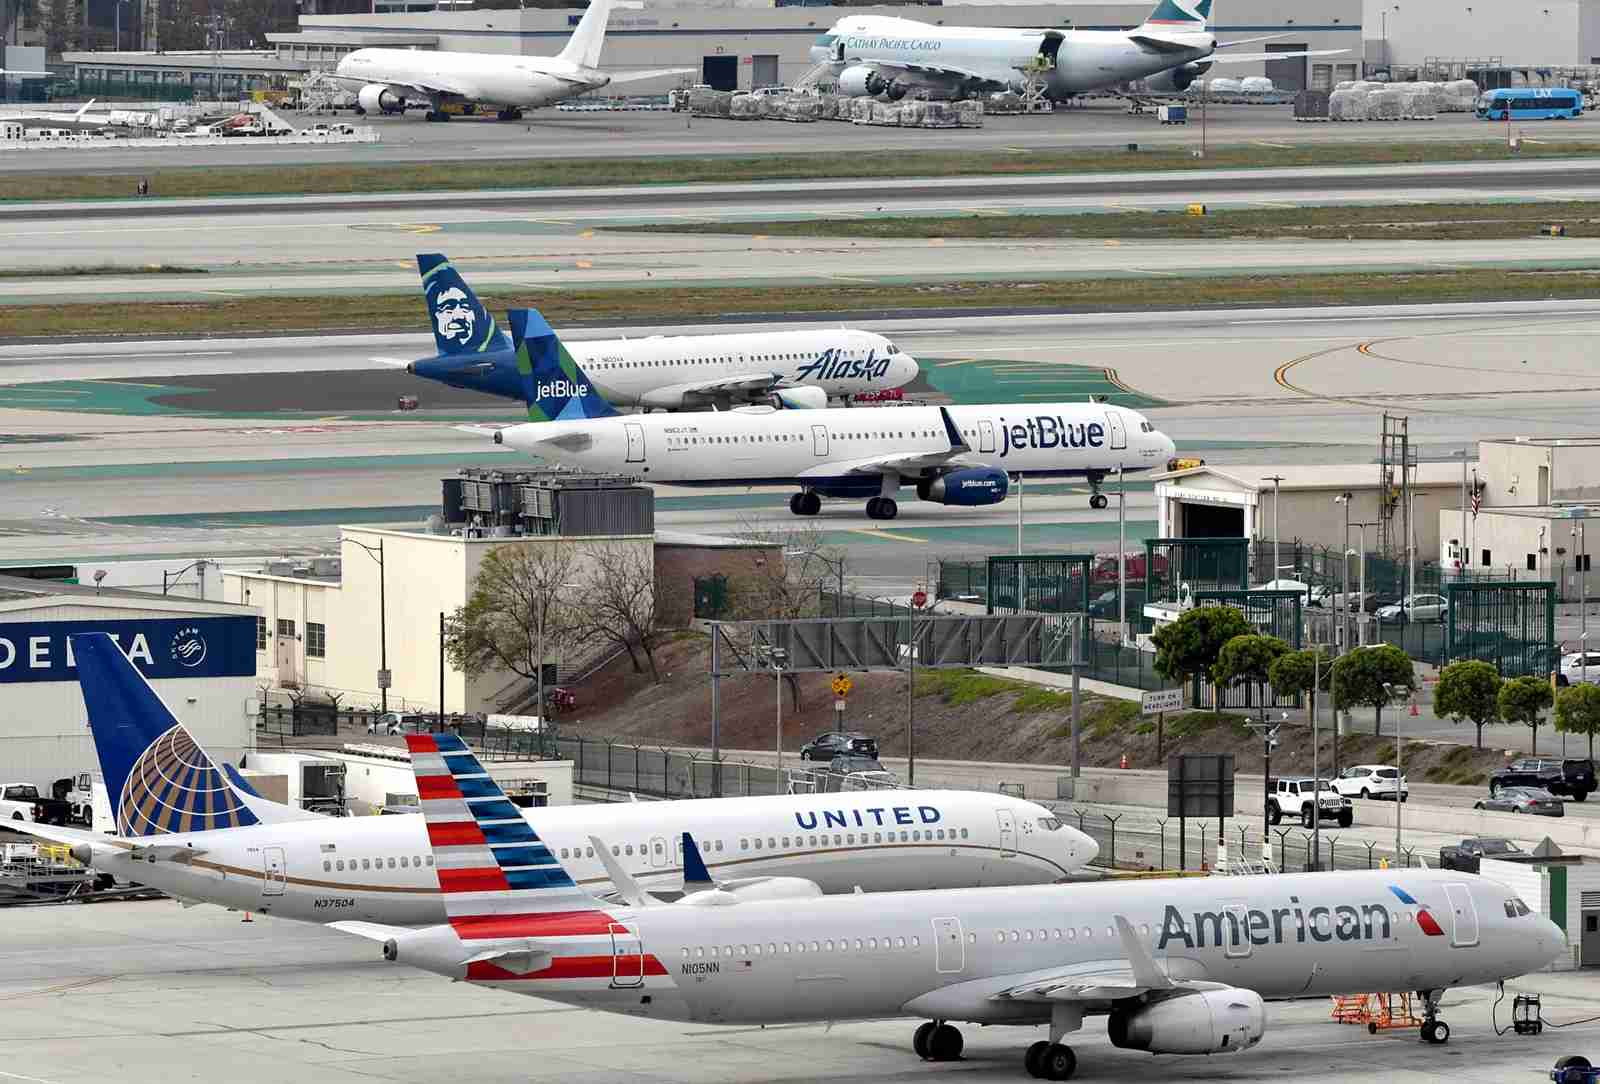 One of the two United 737 MAXes kept in storage at LAX (Photo by Alberto Riva/TPG)